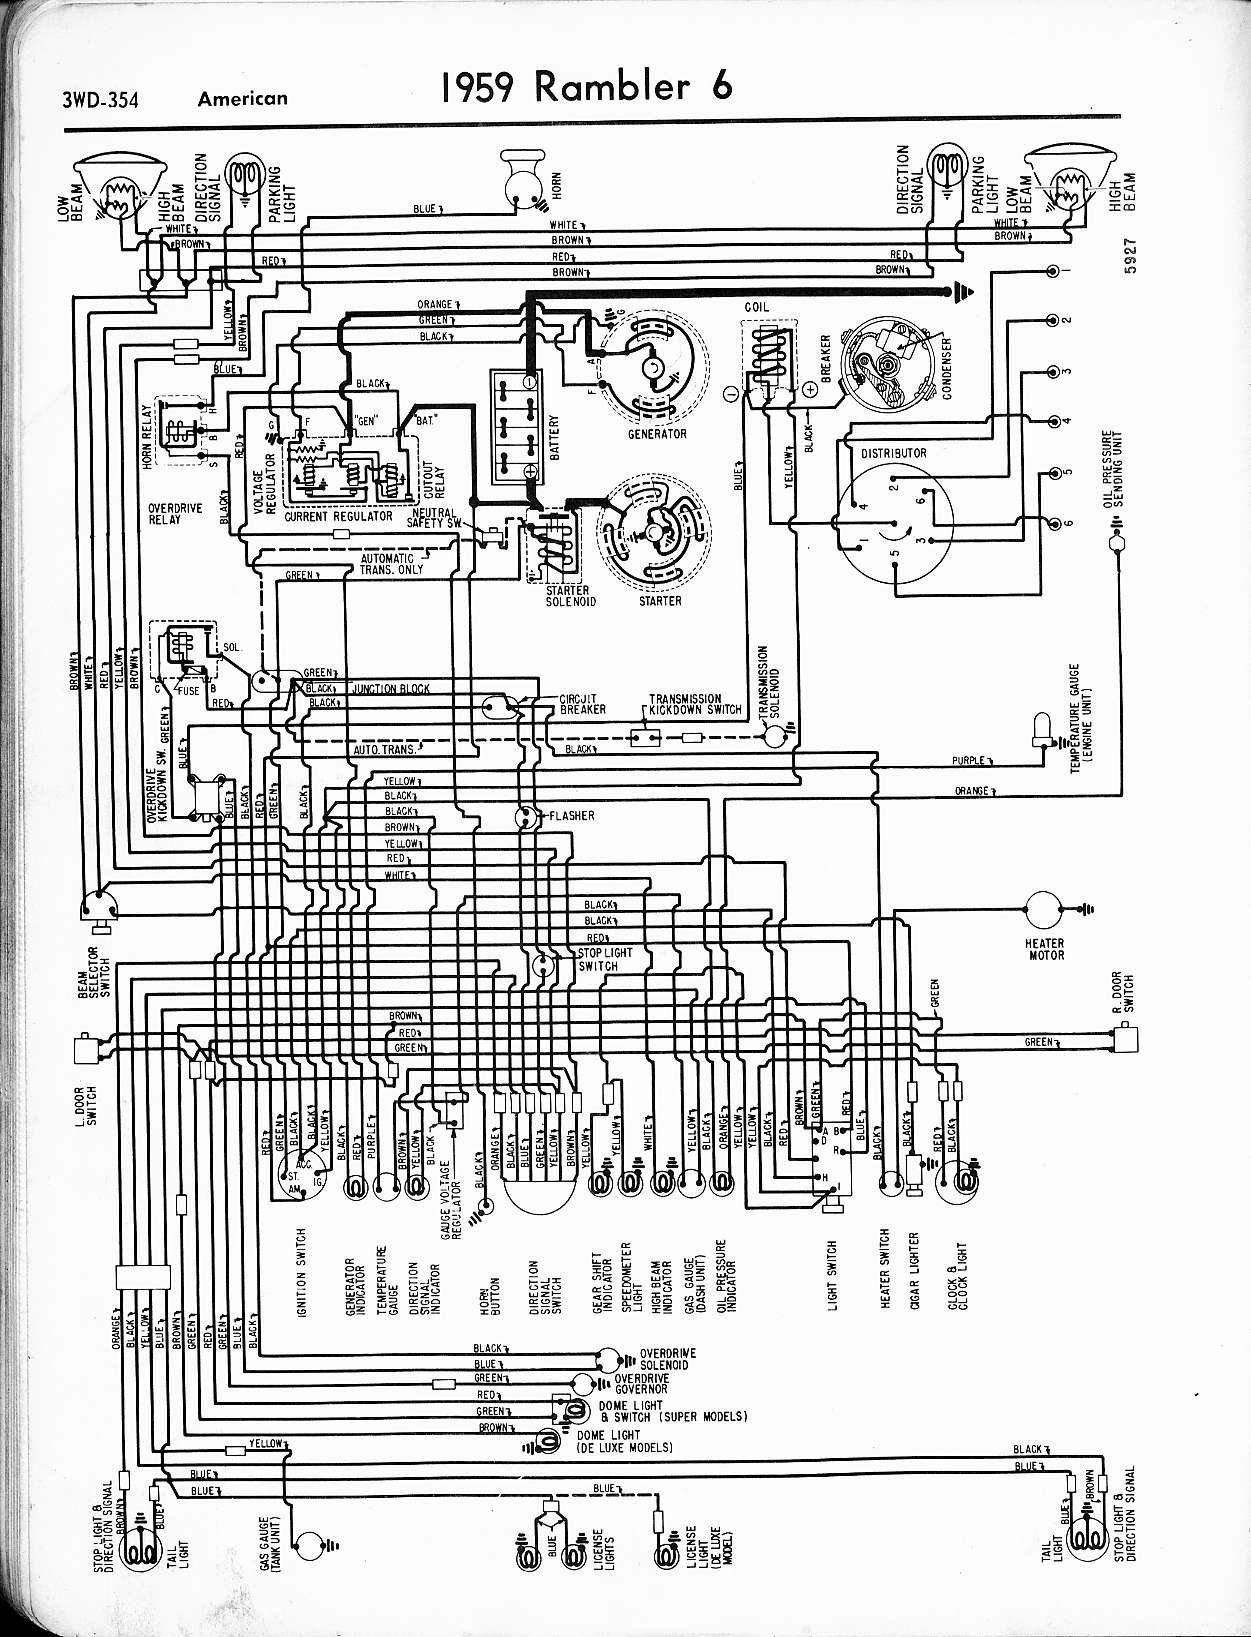 1969 Corvette Wiring Diagram Coil Reveolution Of 1987 El Camino Radio Schematic Rambler Diagrams The Old Car Manual Project Rh Oldcarmanualproject Com 1989 Wiper Motor